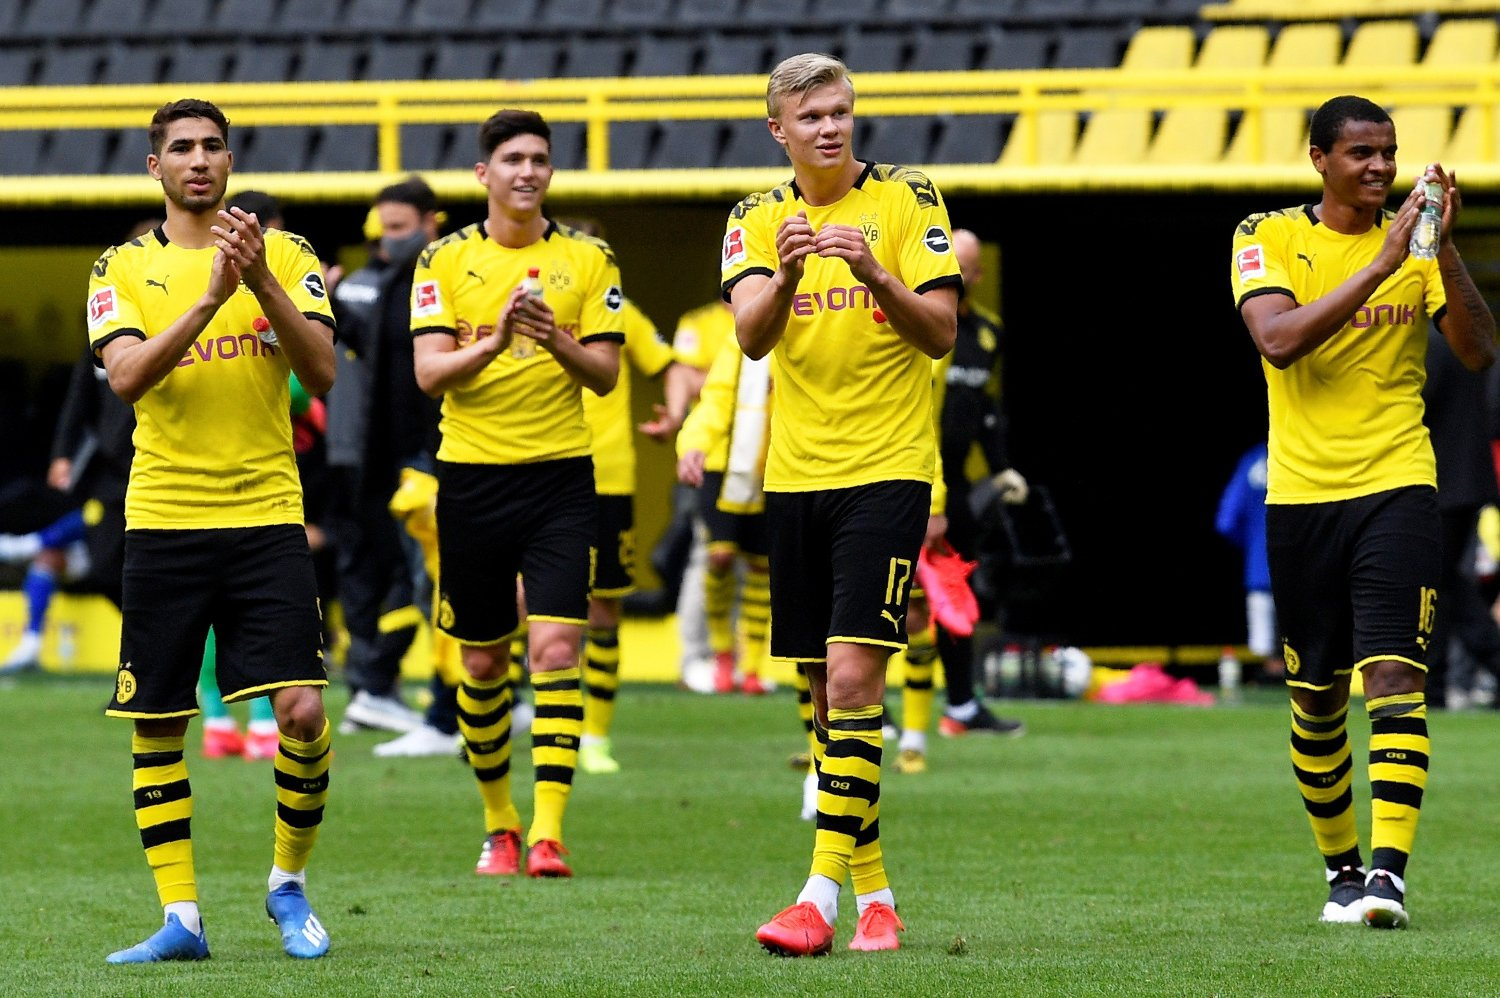 Soccer Football - Bundesliga - Borussia Dortmund v Schalke 04 - Signal Iduna Park, Dortmund, Germany - May 16, 2020 Dortmund's Erling Braut Haaland and teammates celebrate after the match, as play resumes behind closed doors following the outbreak of the coronavirus disease Martin Meissner/Pool via REUTERS DFL regulations prohibit any use of photographs as image sequences and/or quasi-video